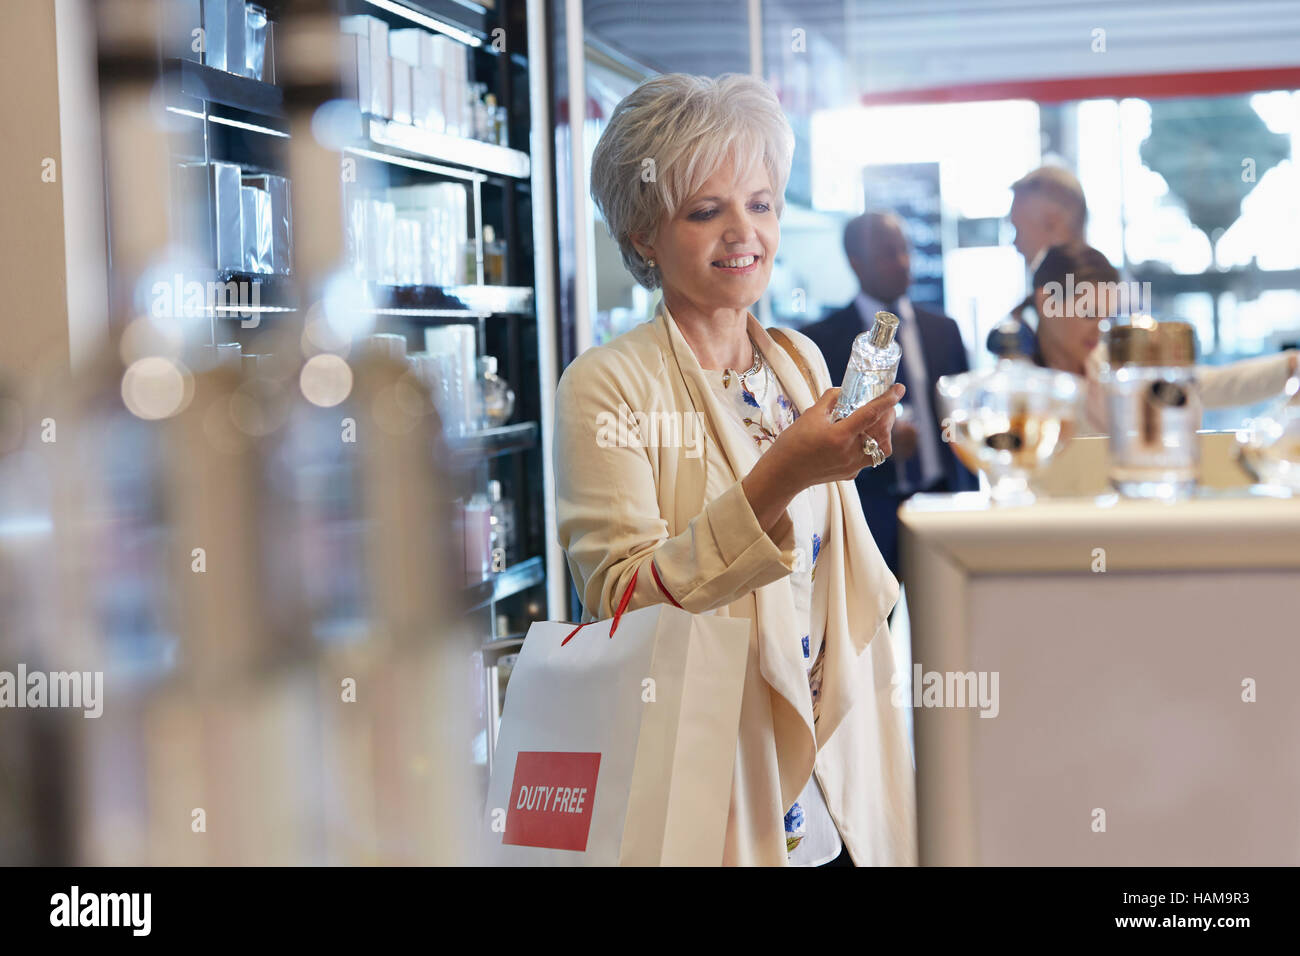 Smiling woman shopping for perfume in duty free shop - Stock Image